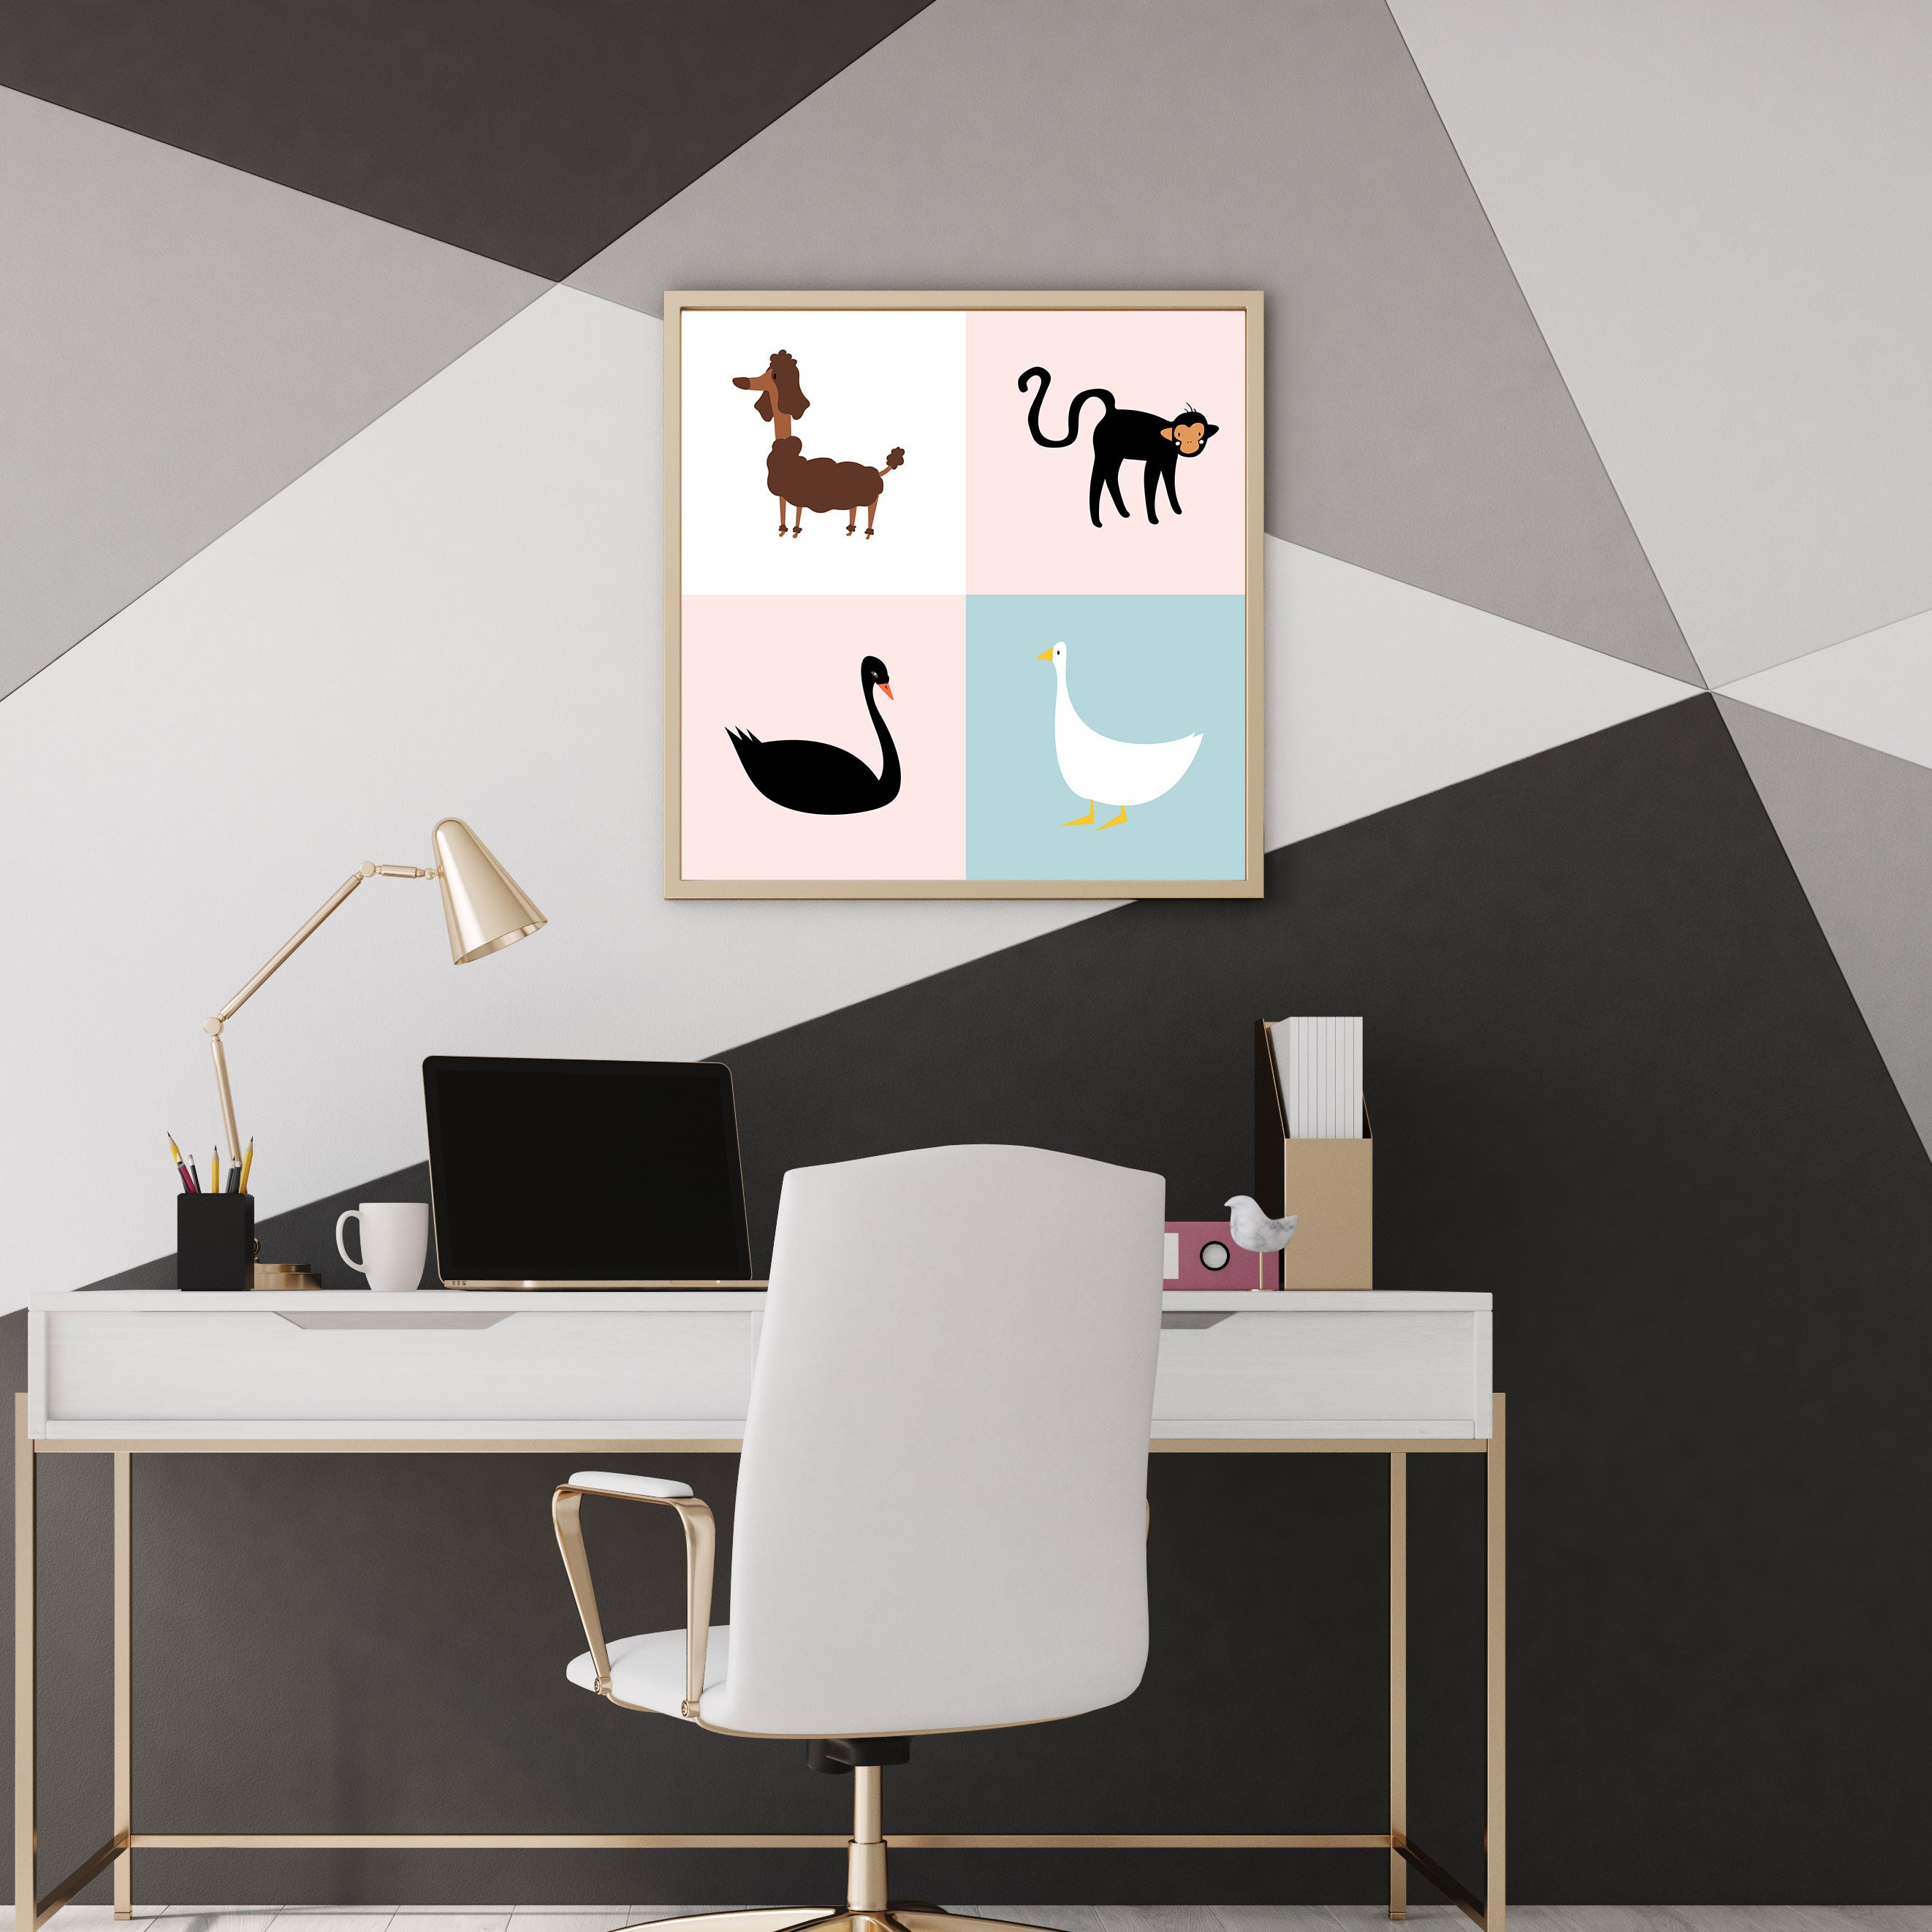 Colourful squares poster print with a black swan, a white goose, a brown dog and a black monkey - wall view